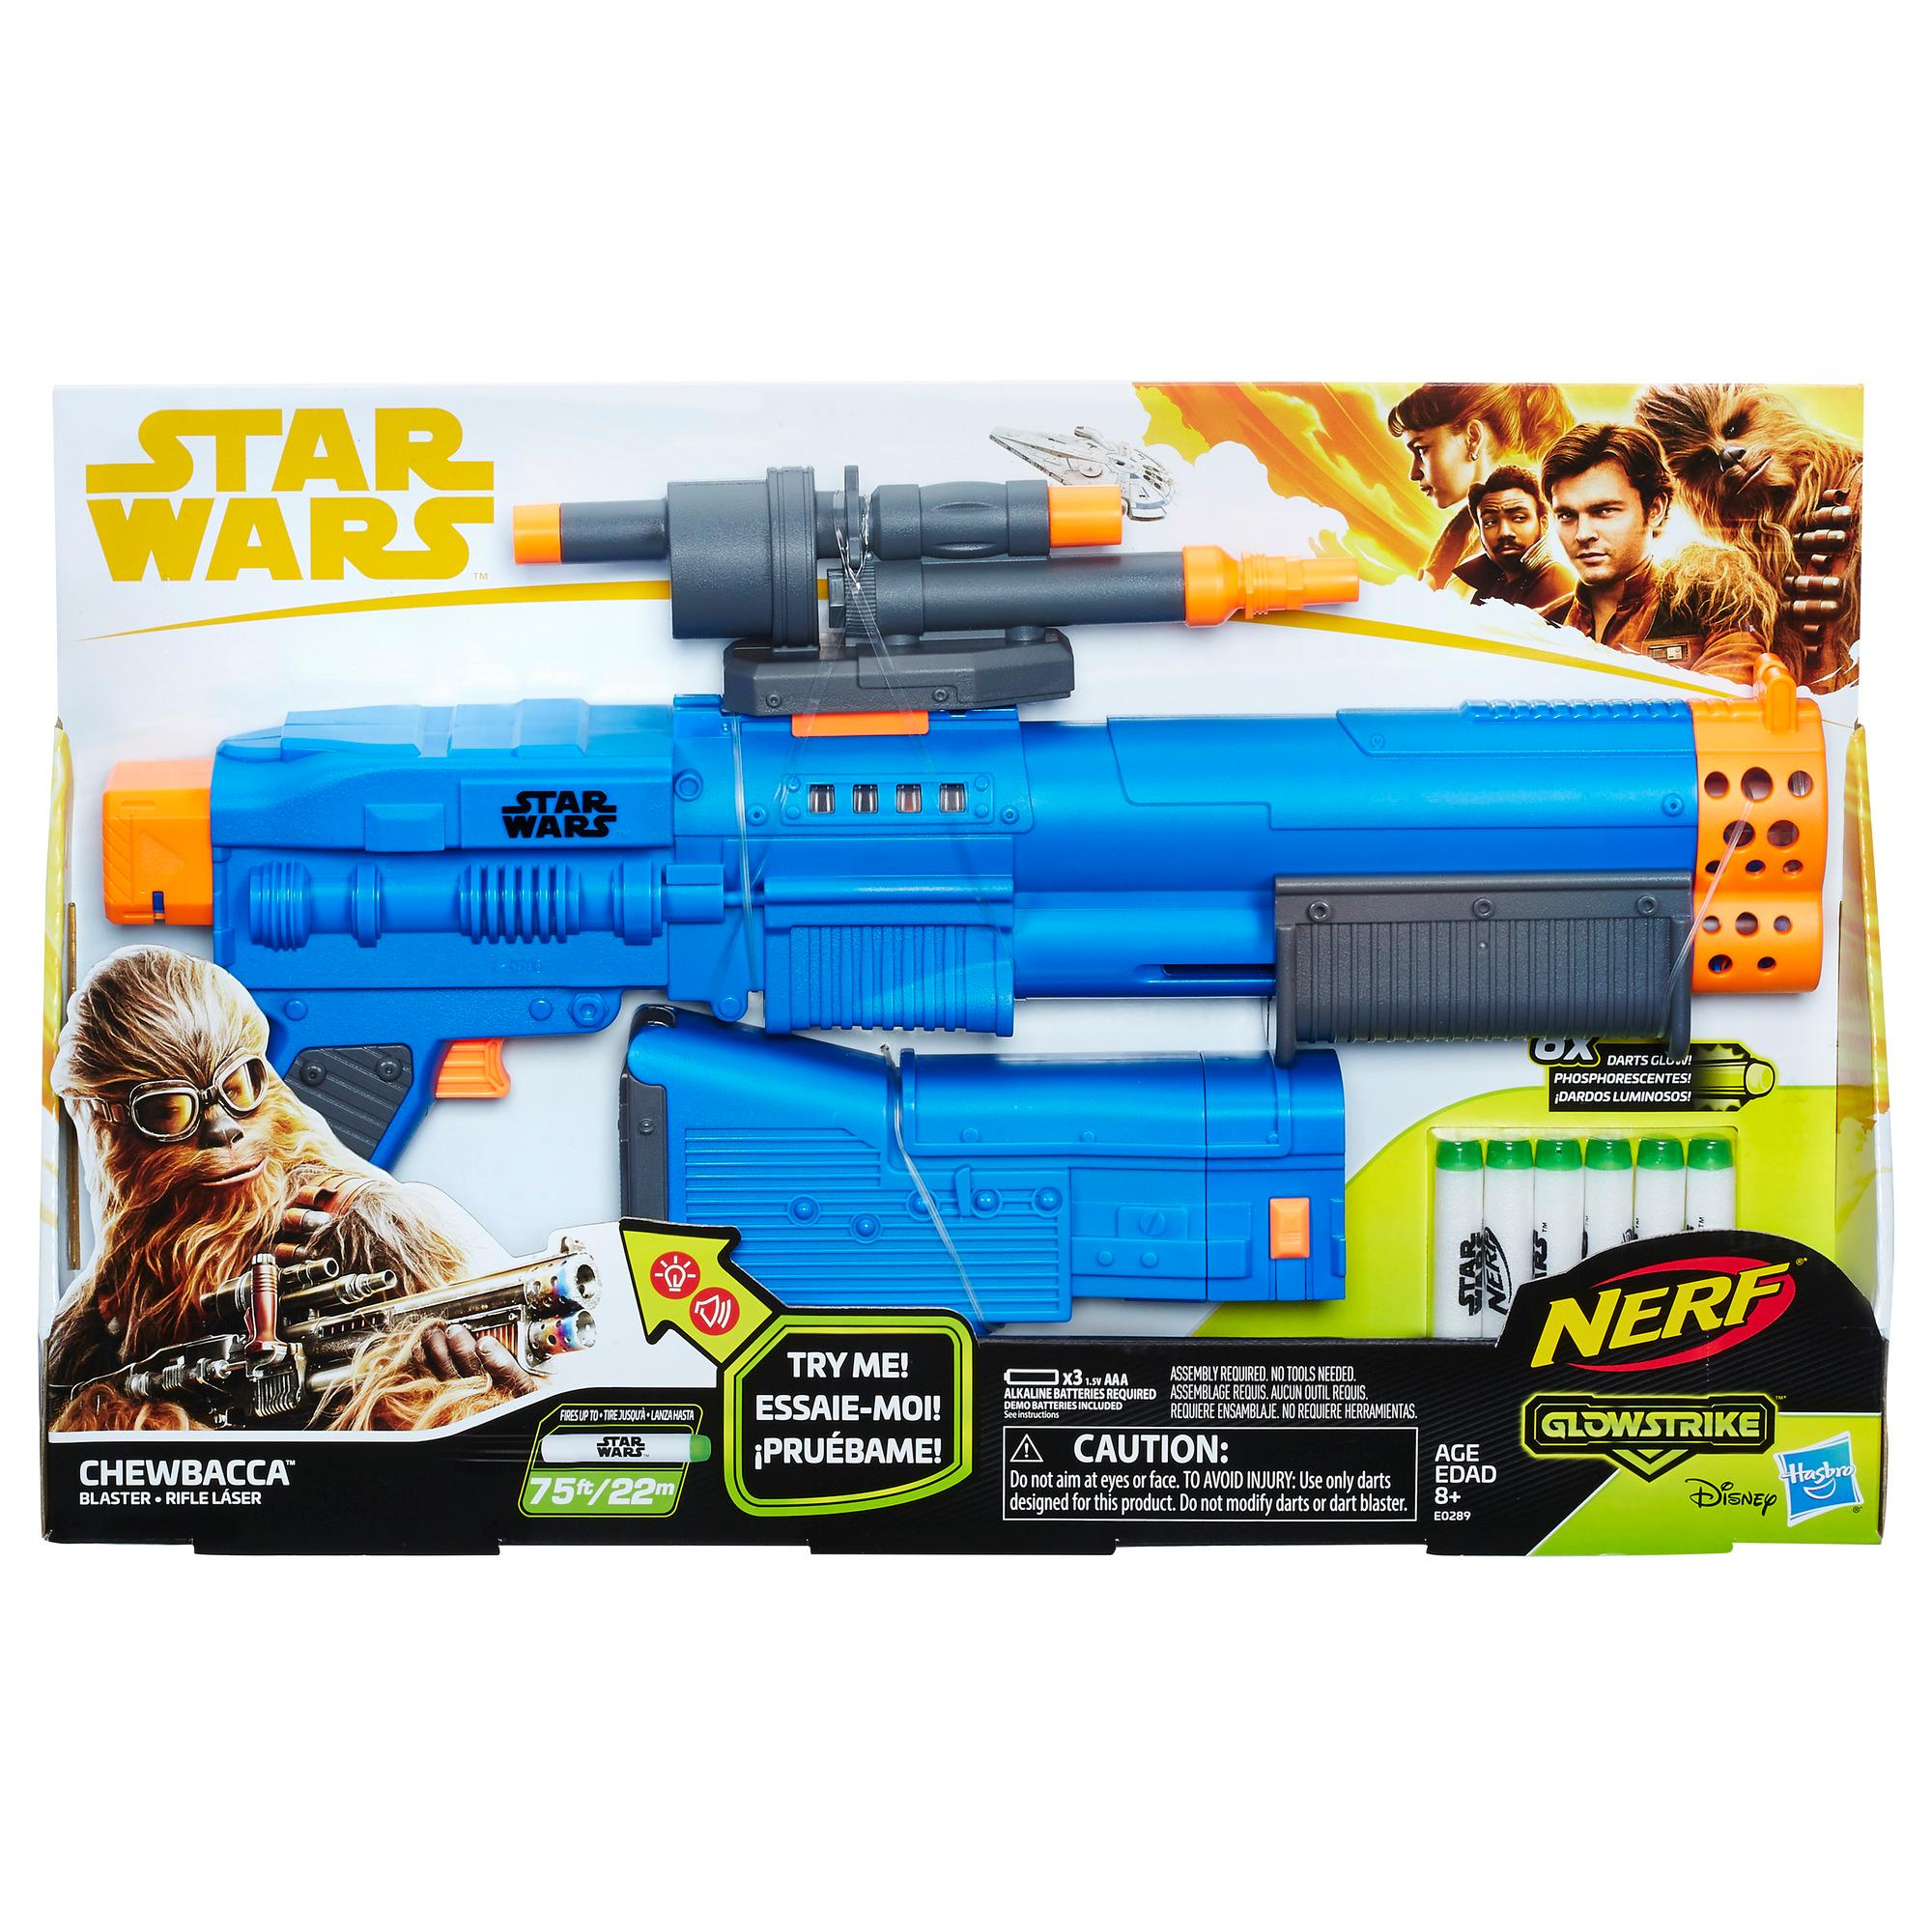 Star Wars Nerf - Ballesta de Chewbacca